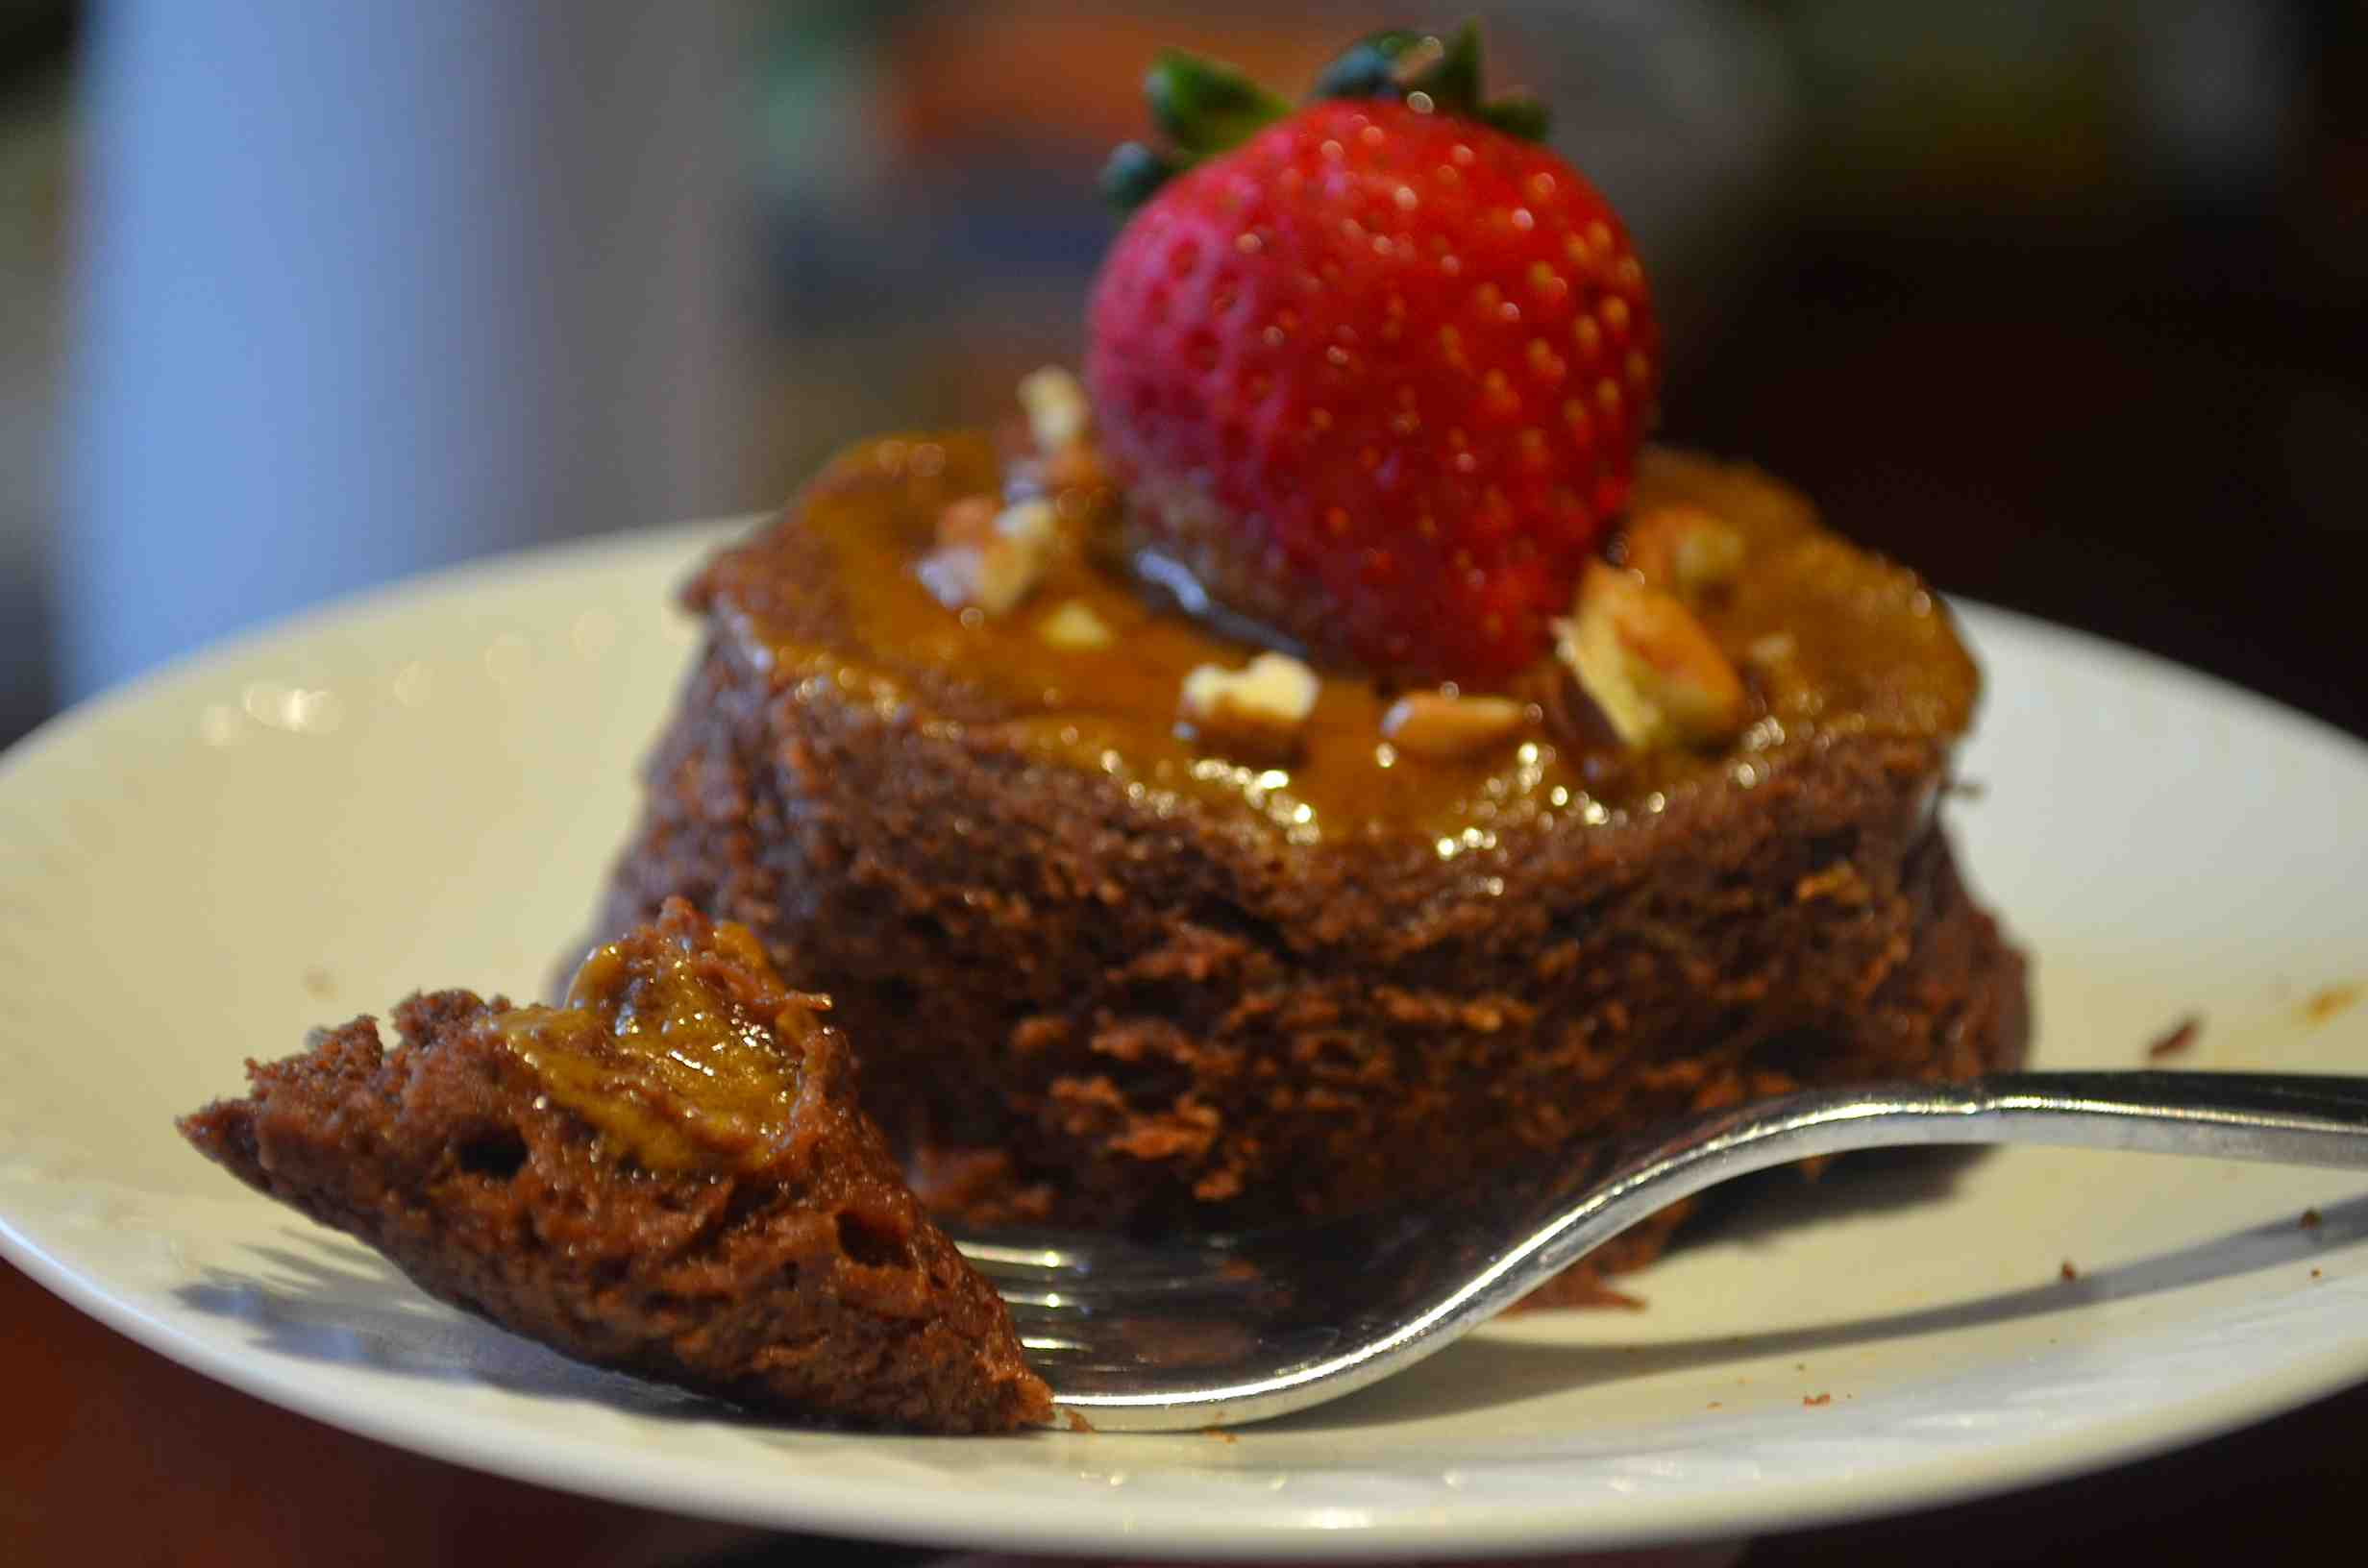 THE BEST Chocolate Protein Cake EVER with Caramel Sauce